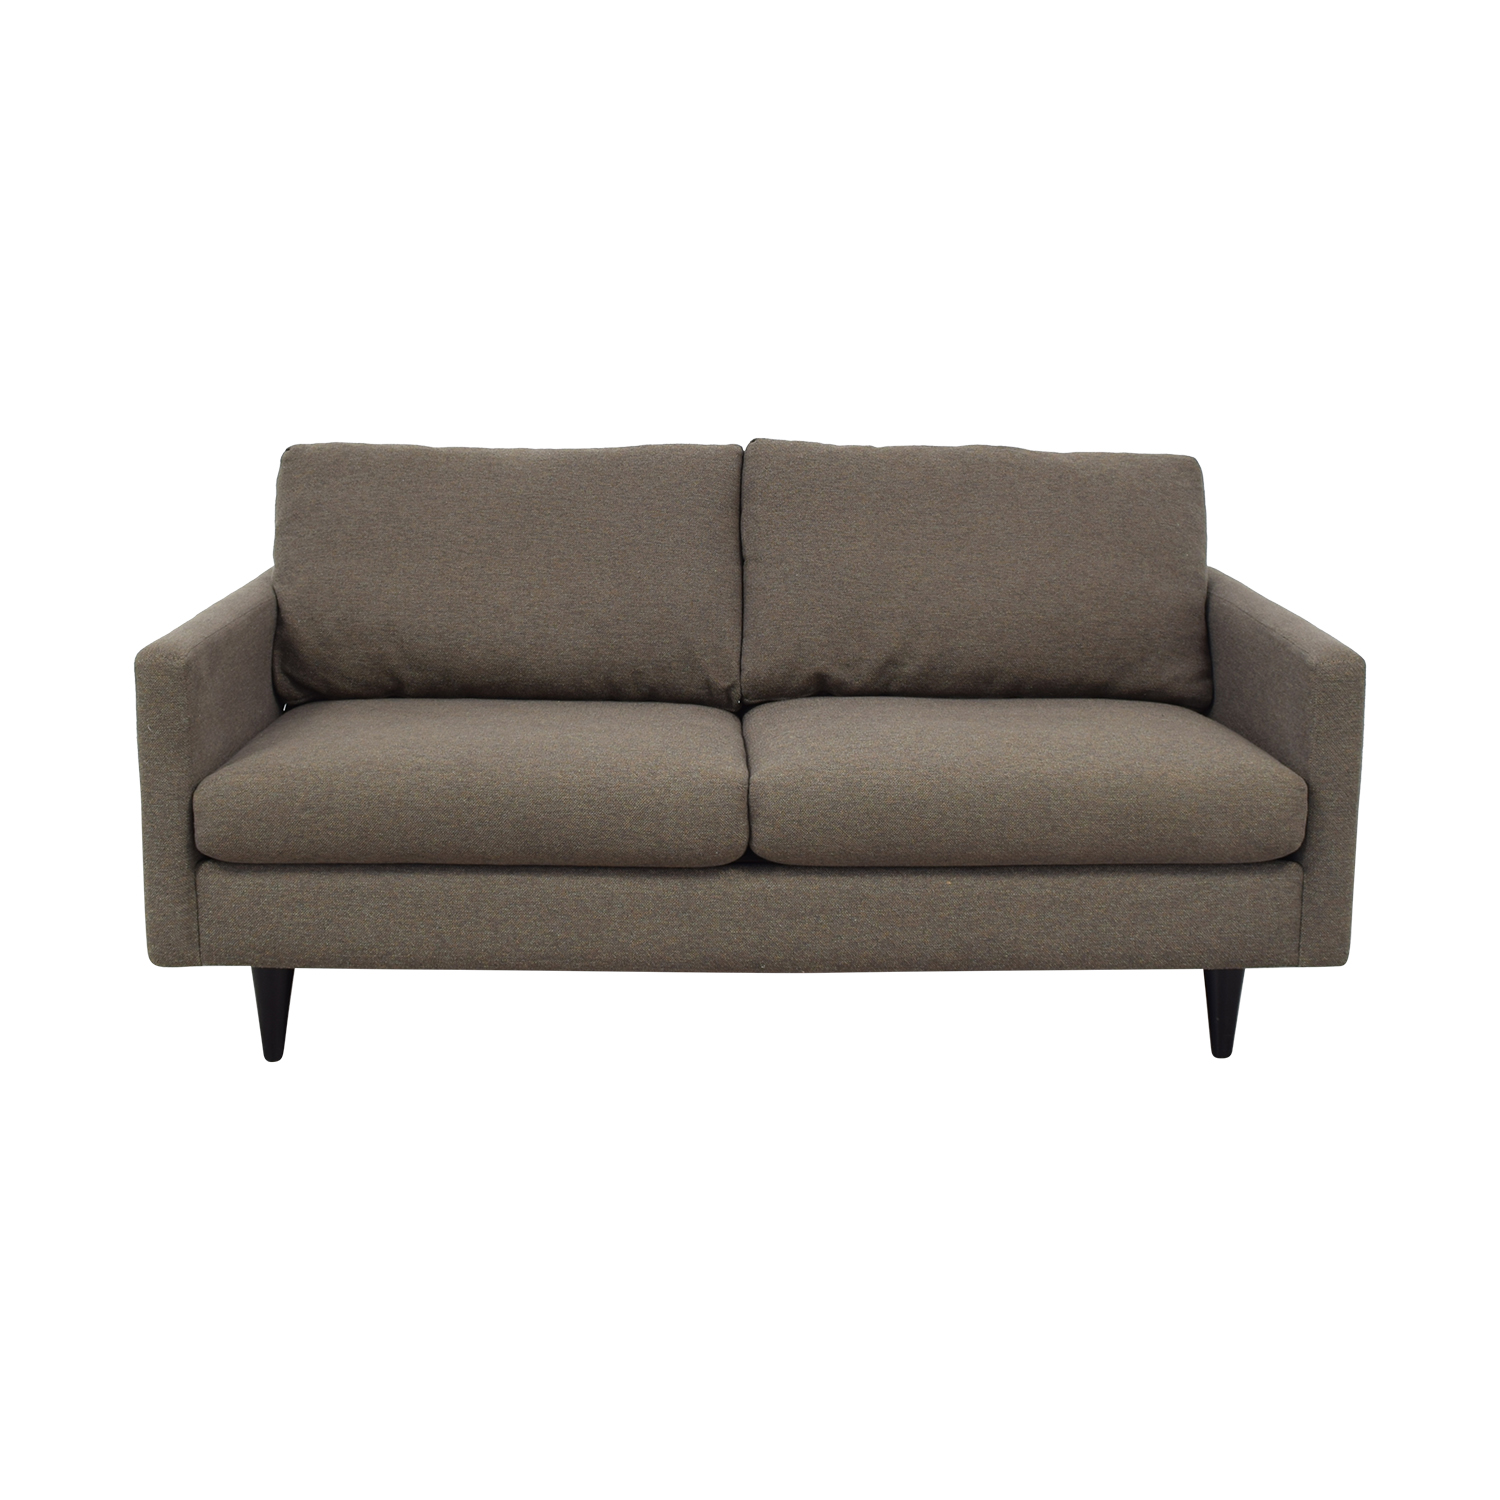 Younger Furniture Younger Furniture Lenny Apartment Sofa nj